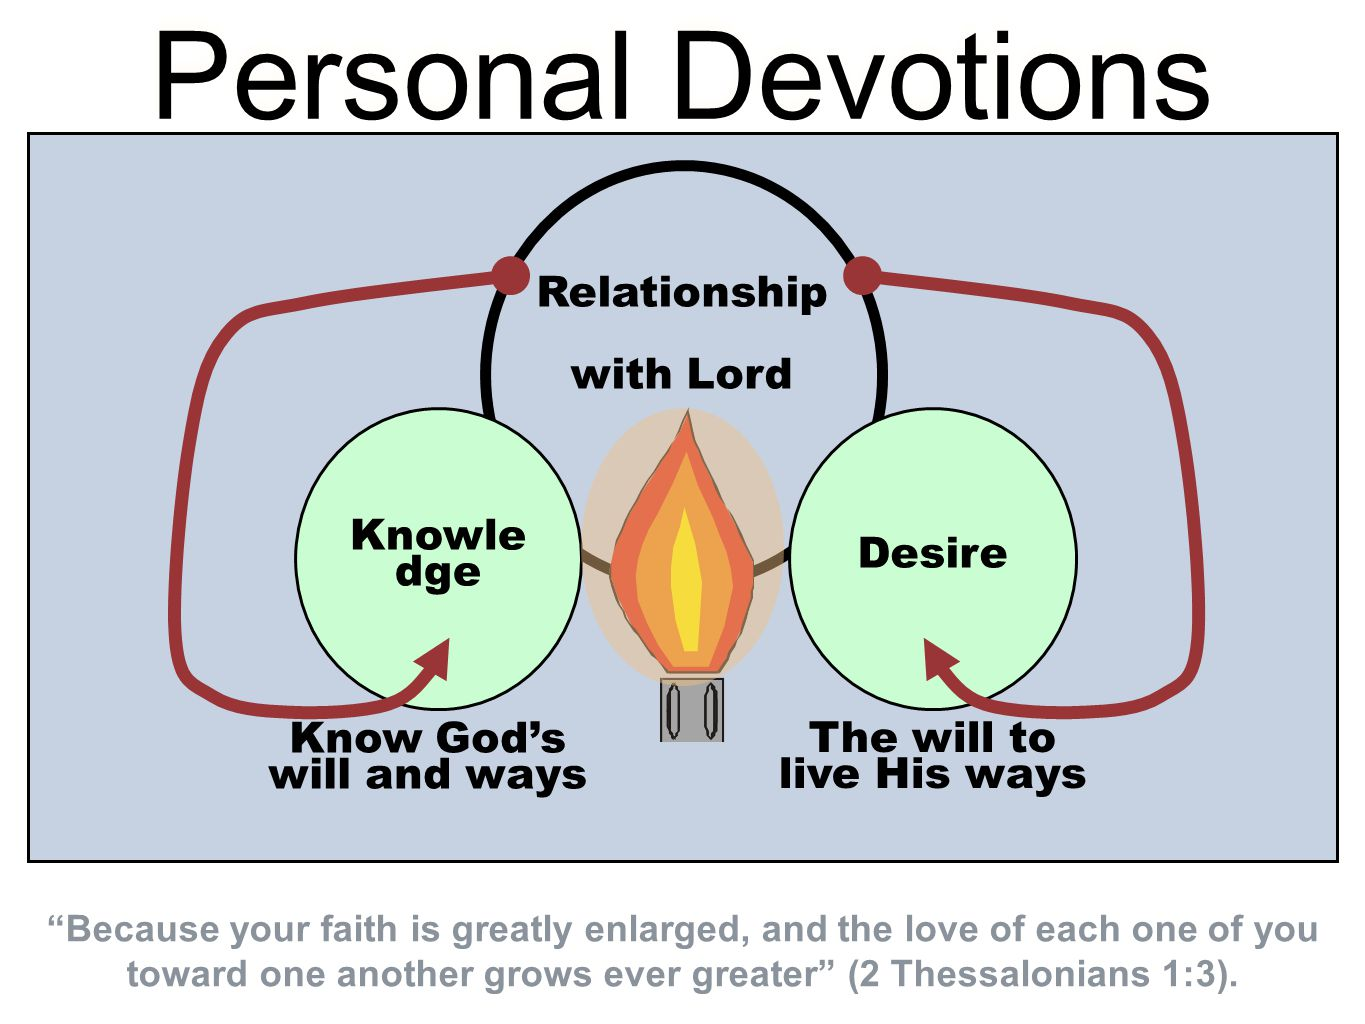 Knowle dge The will to live His ways Personal Devotions Know God's will and ways Desire Relationship with Lord Because your faith is greatly enlarged, and the love of each one of you toward one another grows ever greater (2 Thessalonians 1:3).